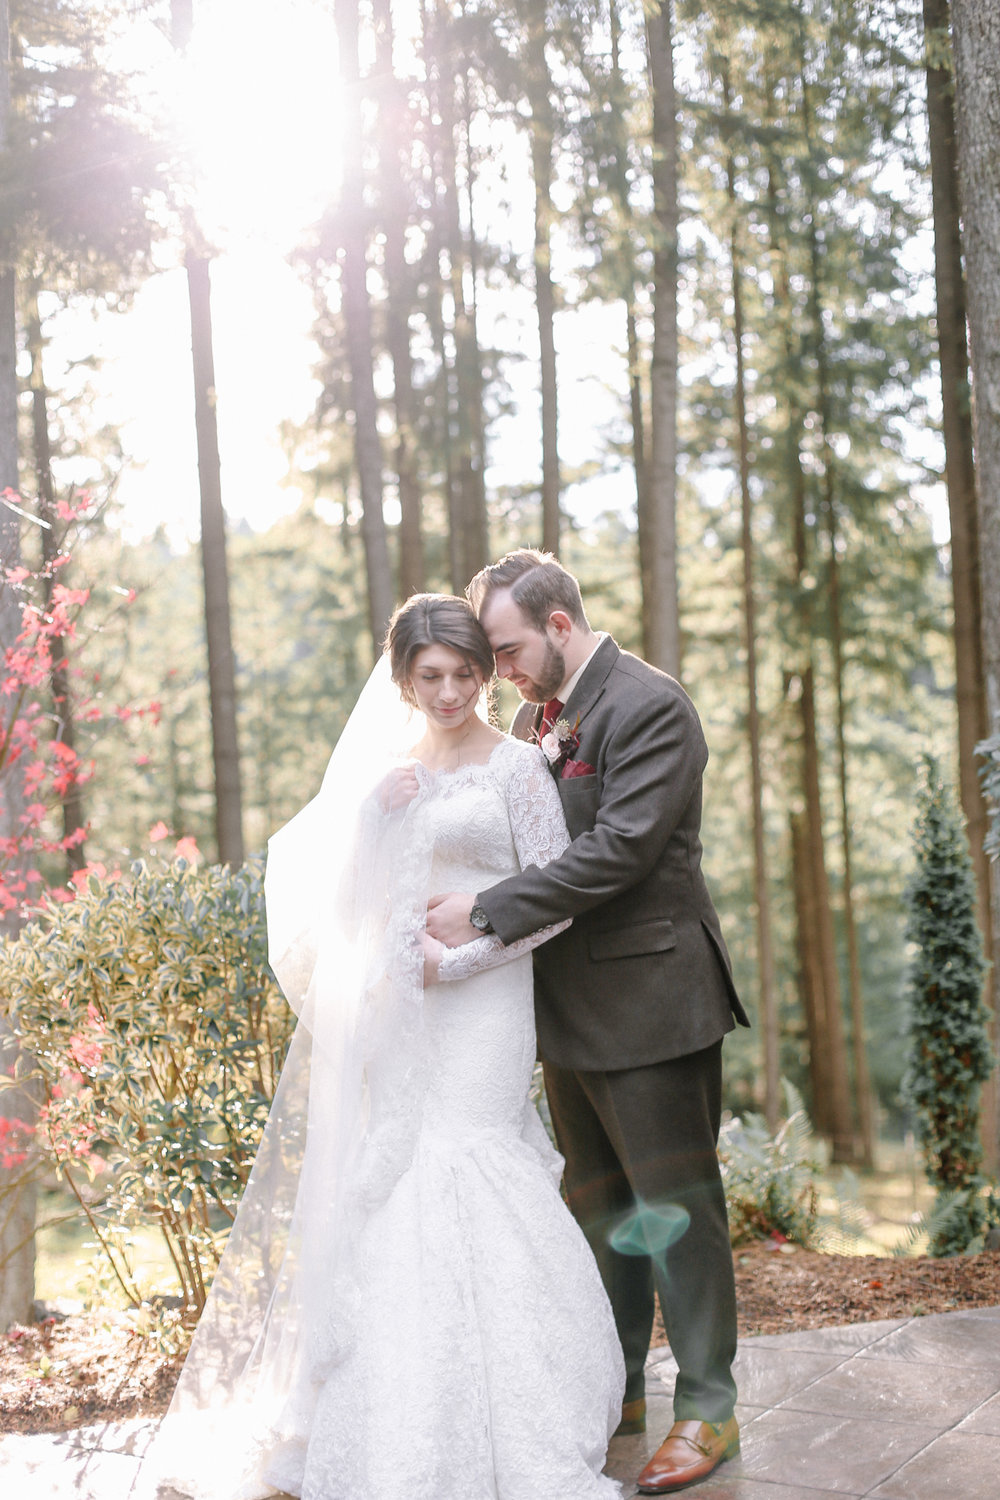 Manu and Laura - Portland Wedding Photographer - 38.jpg